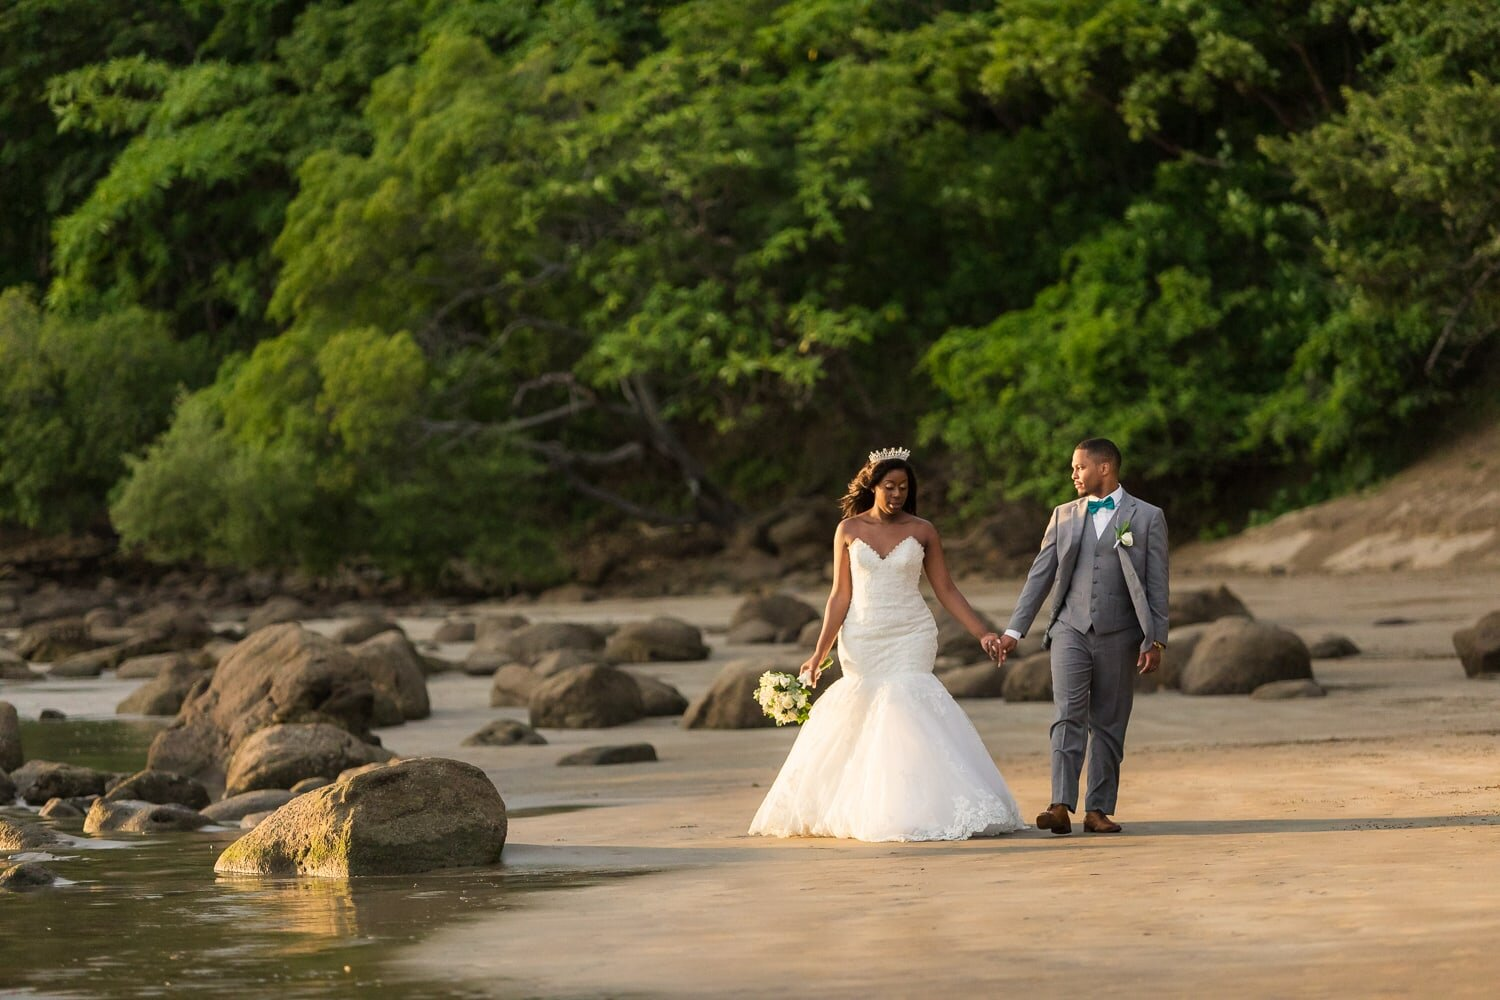 tylenn-xavier-wedding-dreams-las-mareas-costa-rica-38.jpg